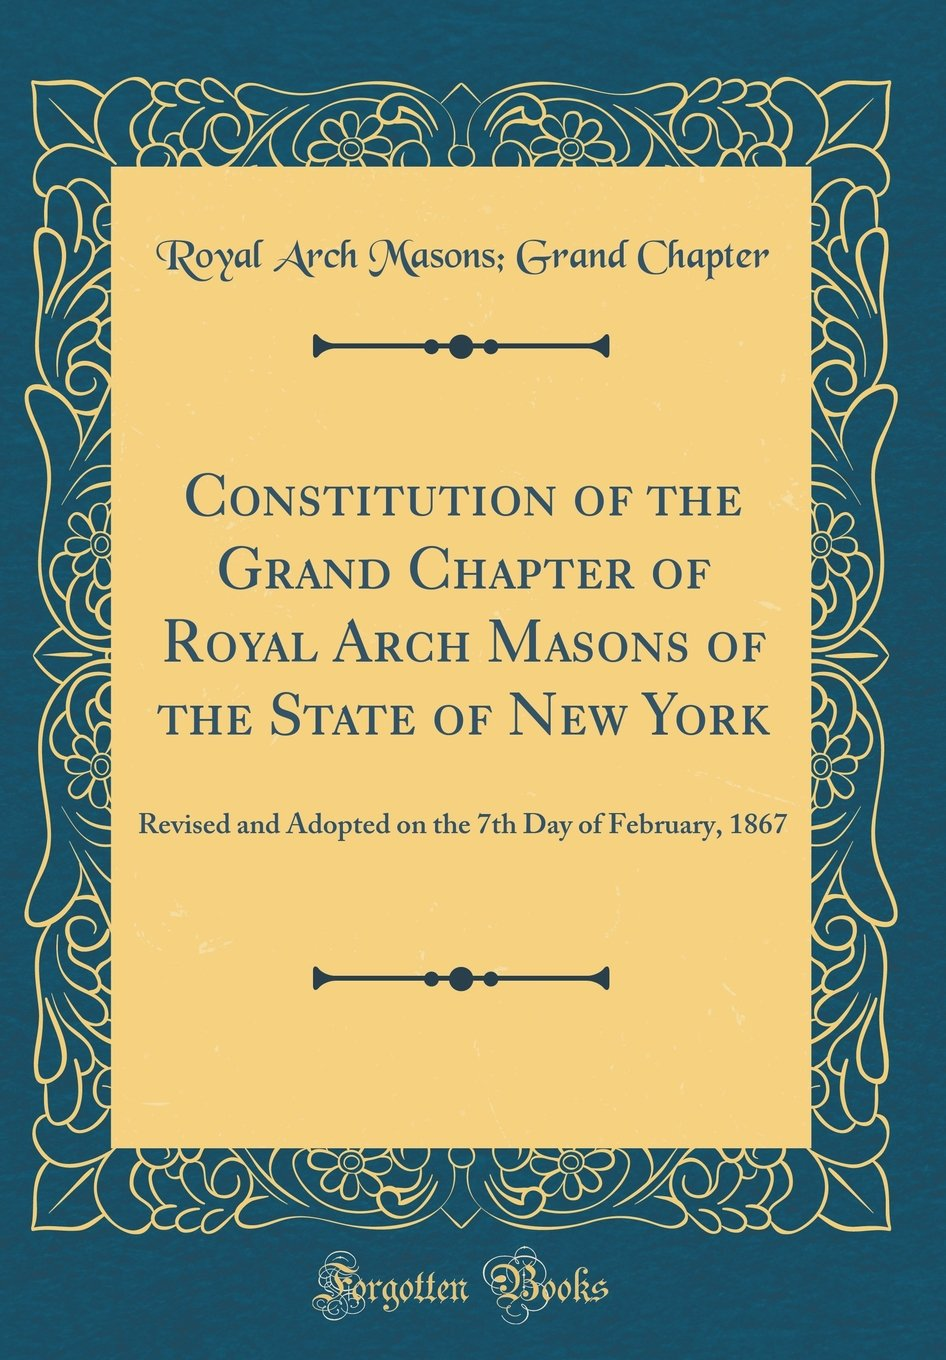 Constitution of the Grand Chapter of Royal Arch Masons of